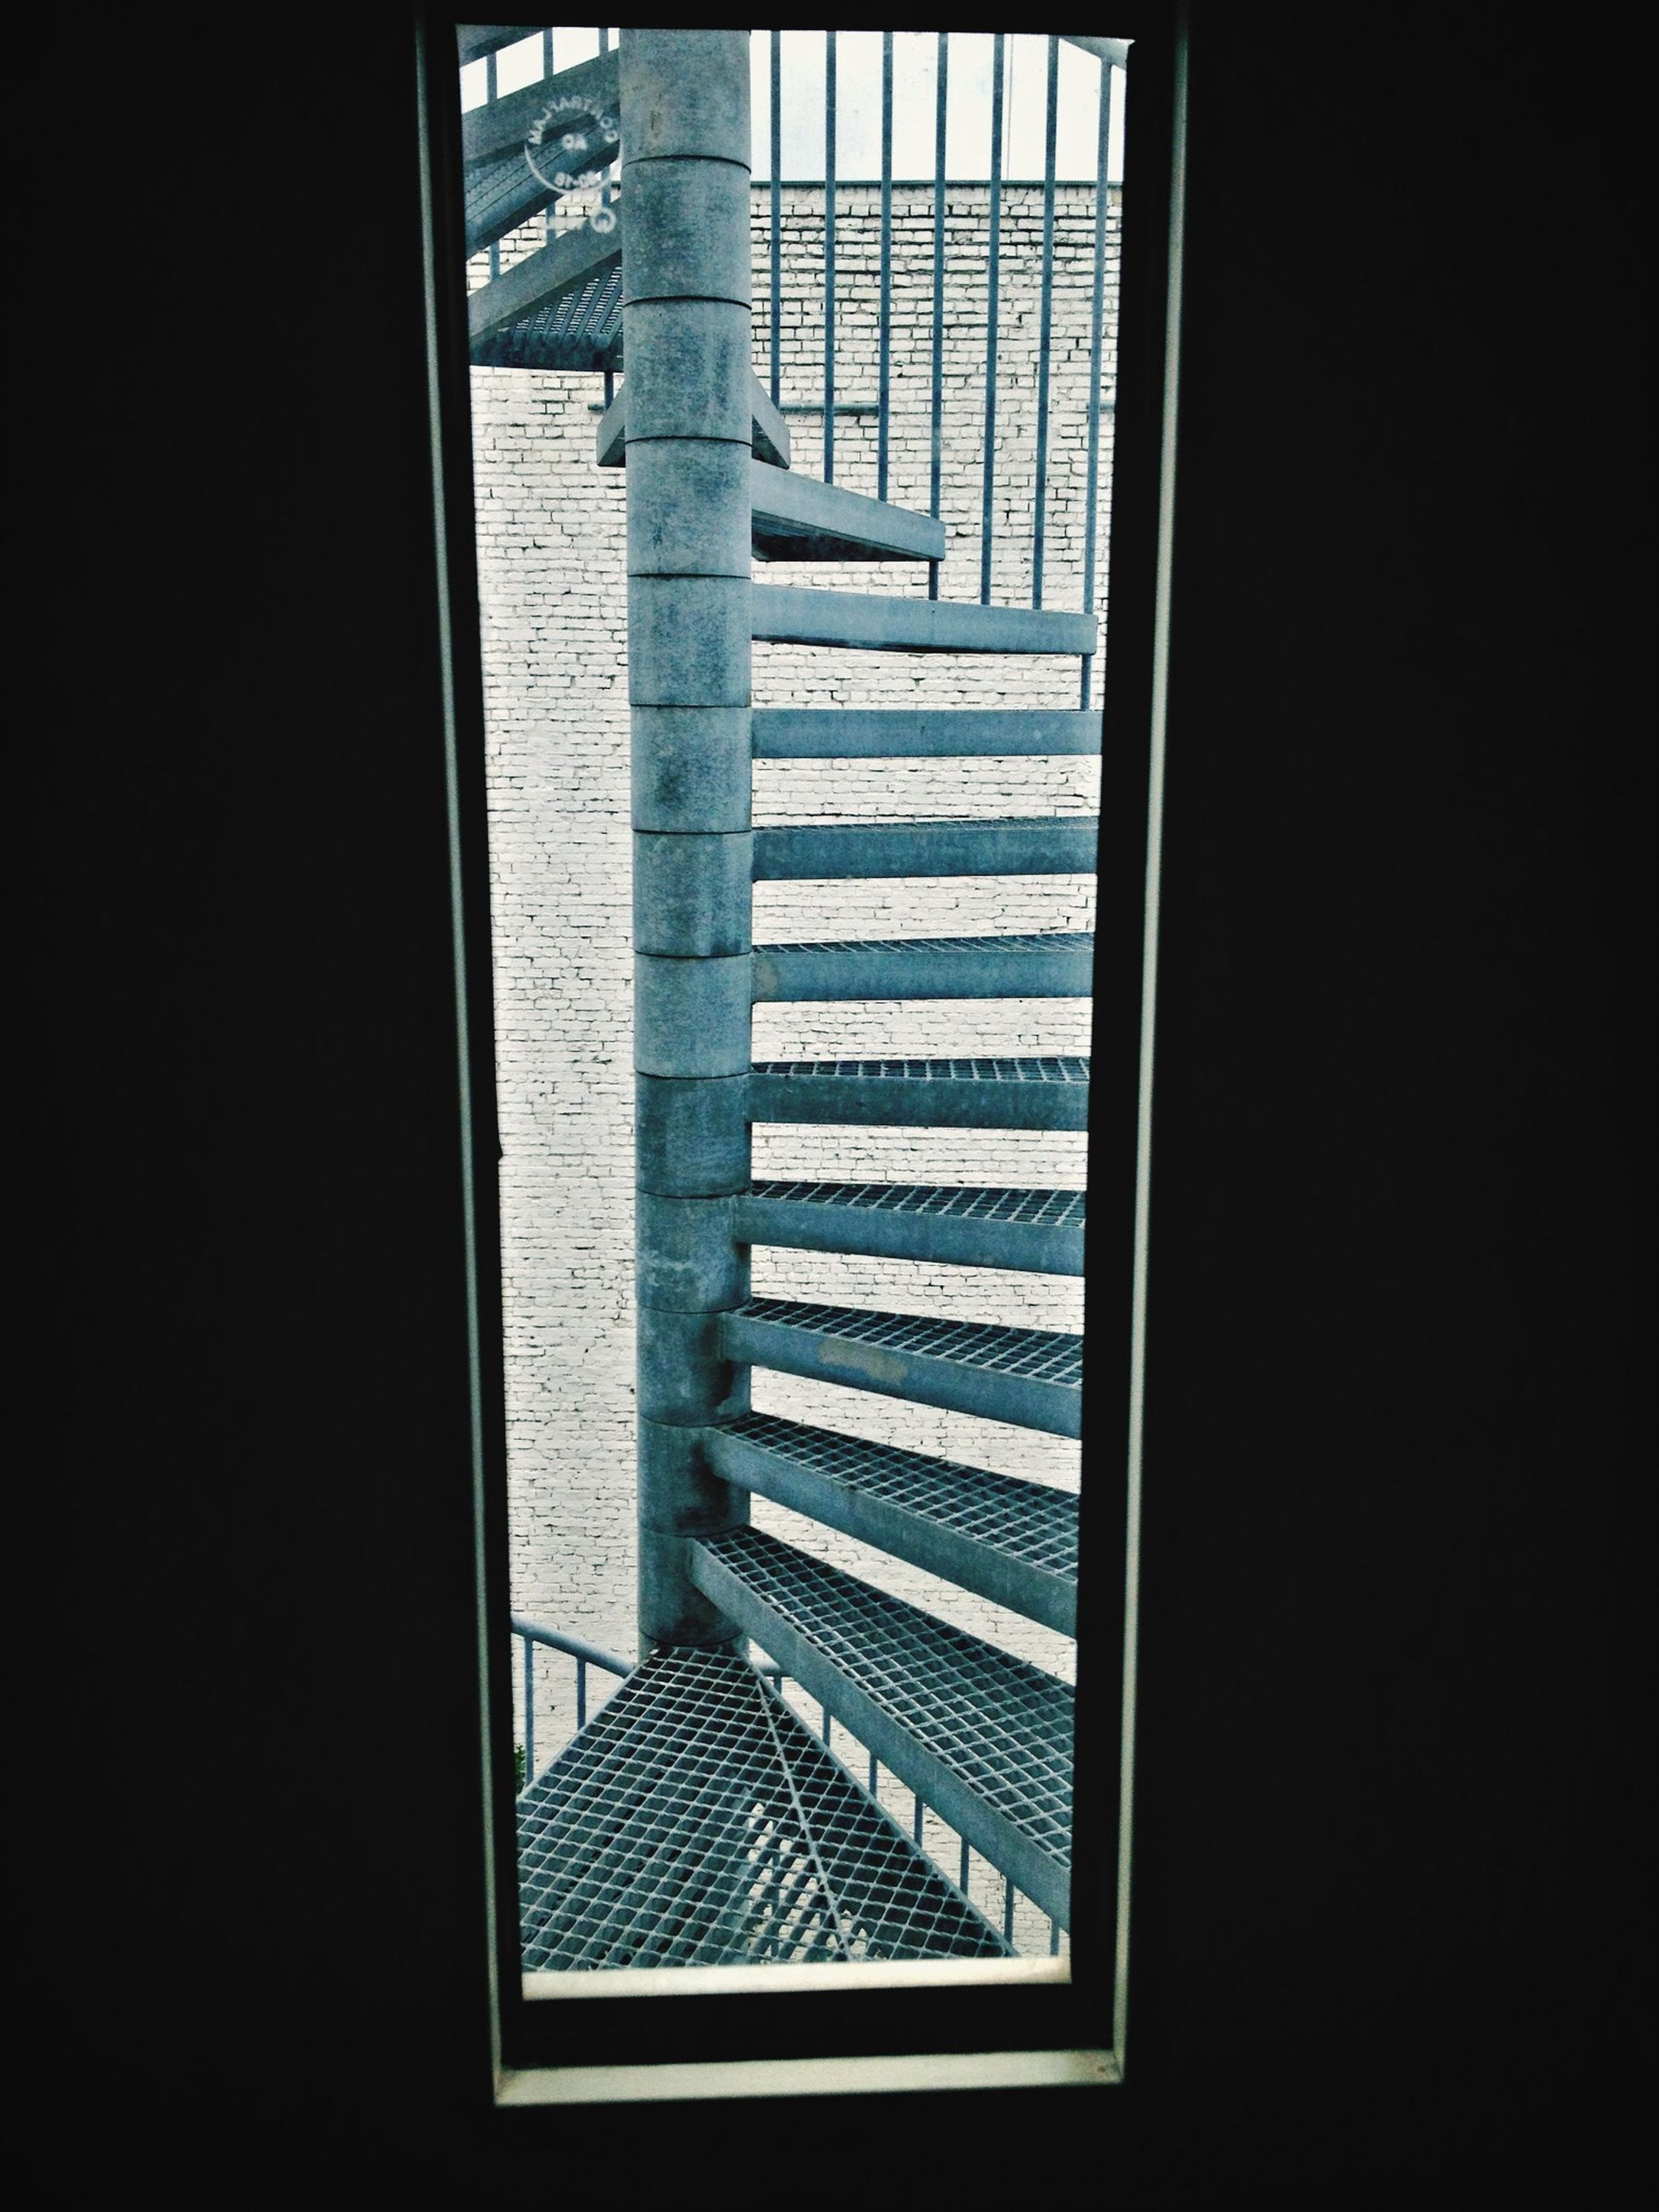 indoors, window, pattern, architecture, dark, built structure, blinds, sunlight, railing, shadow, staircase, glass - material, steps, home interior, transparent, day, closed, no people, absence, steps and staircases